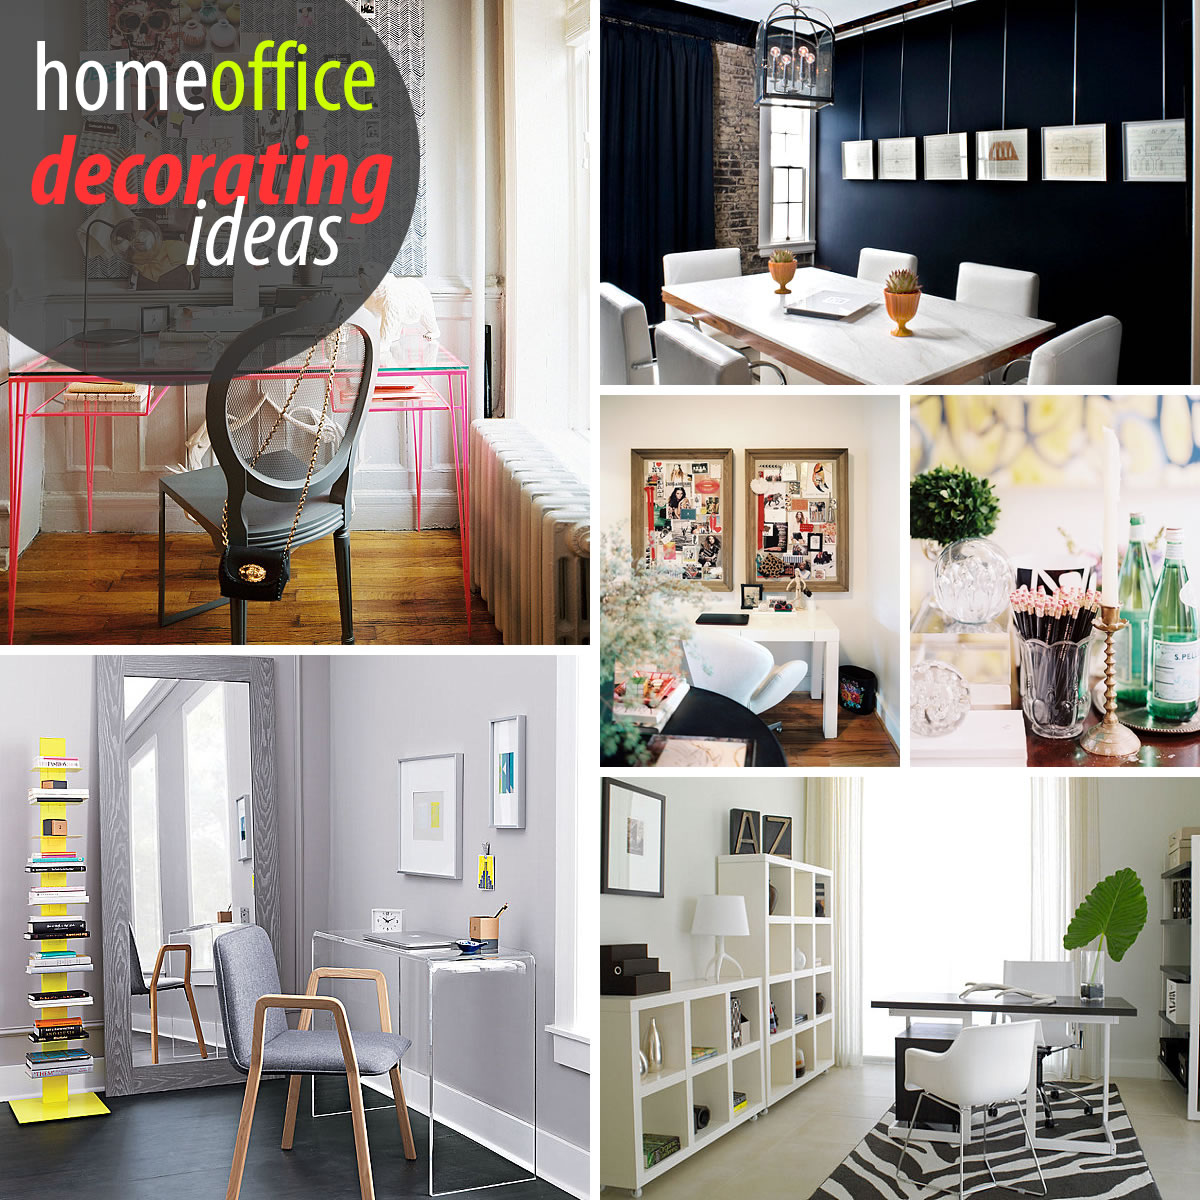 Creative home office decorating ideas for Home furnishing ideas